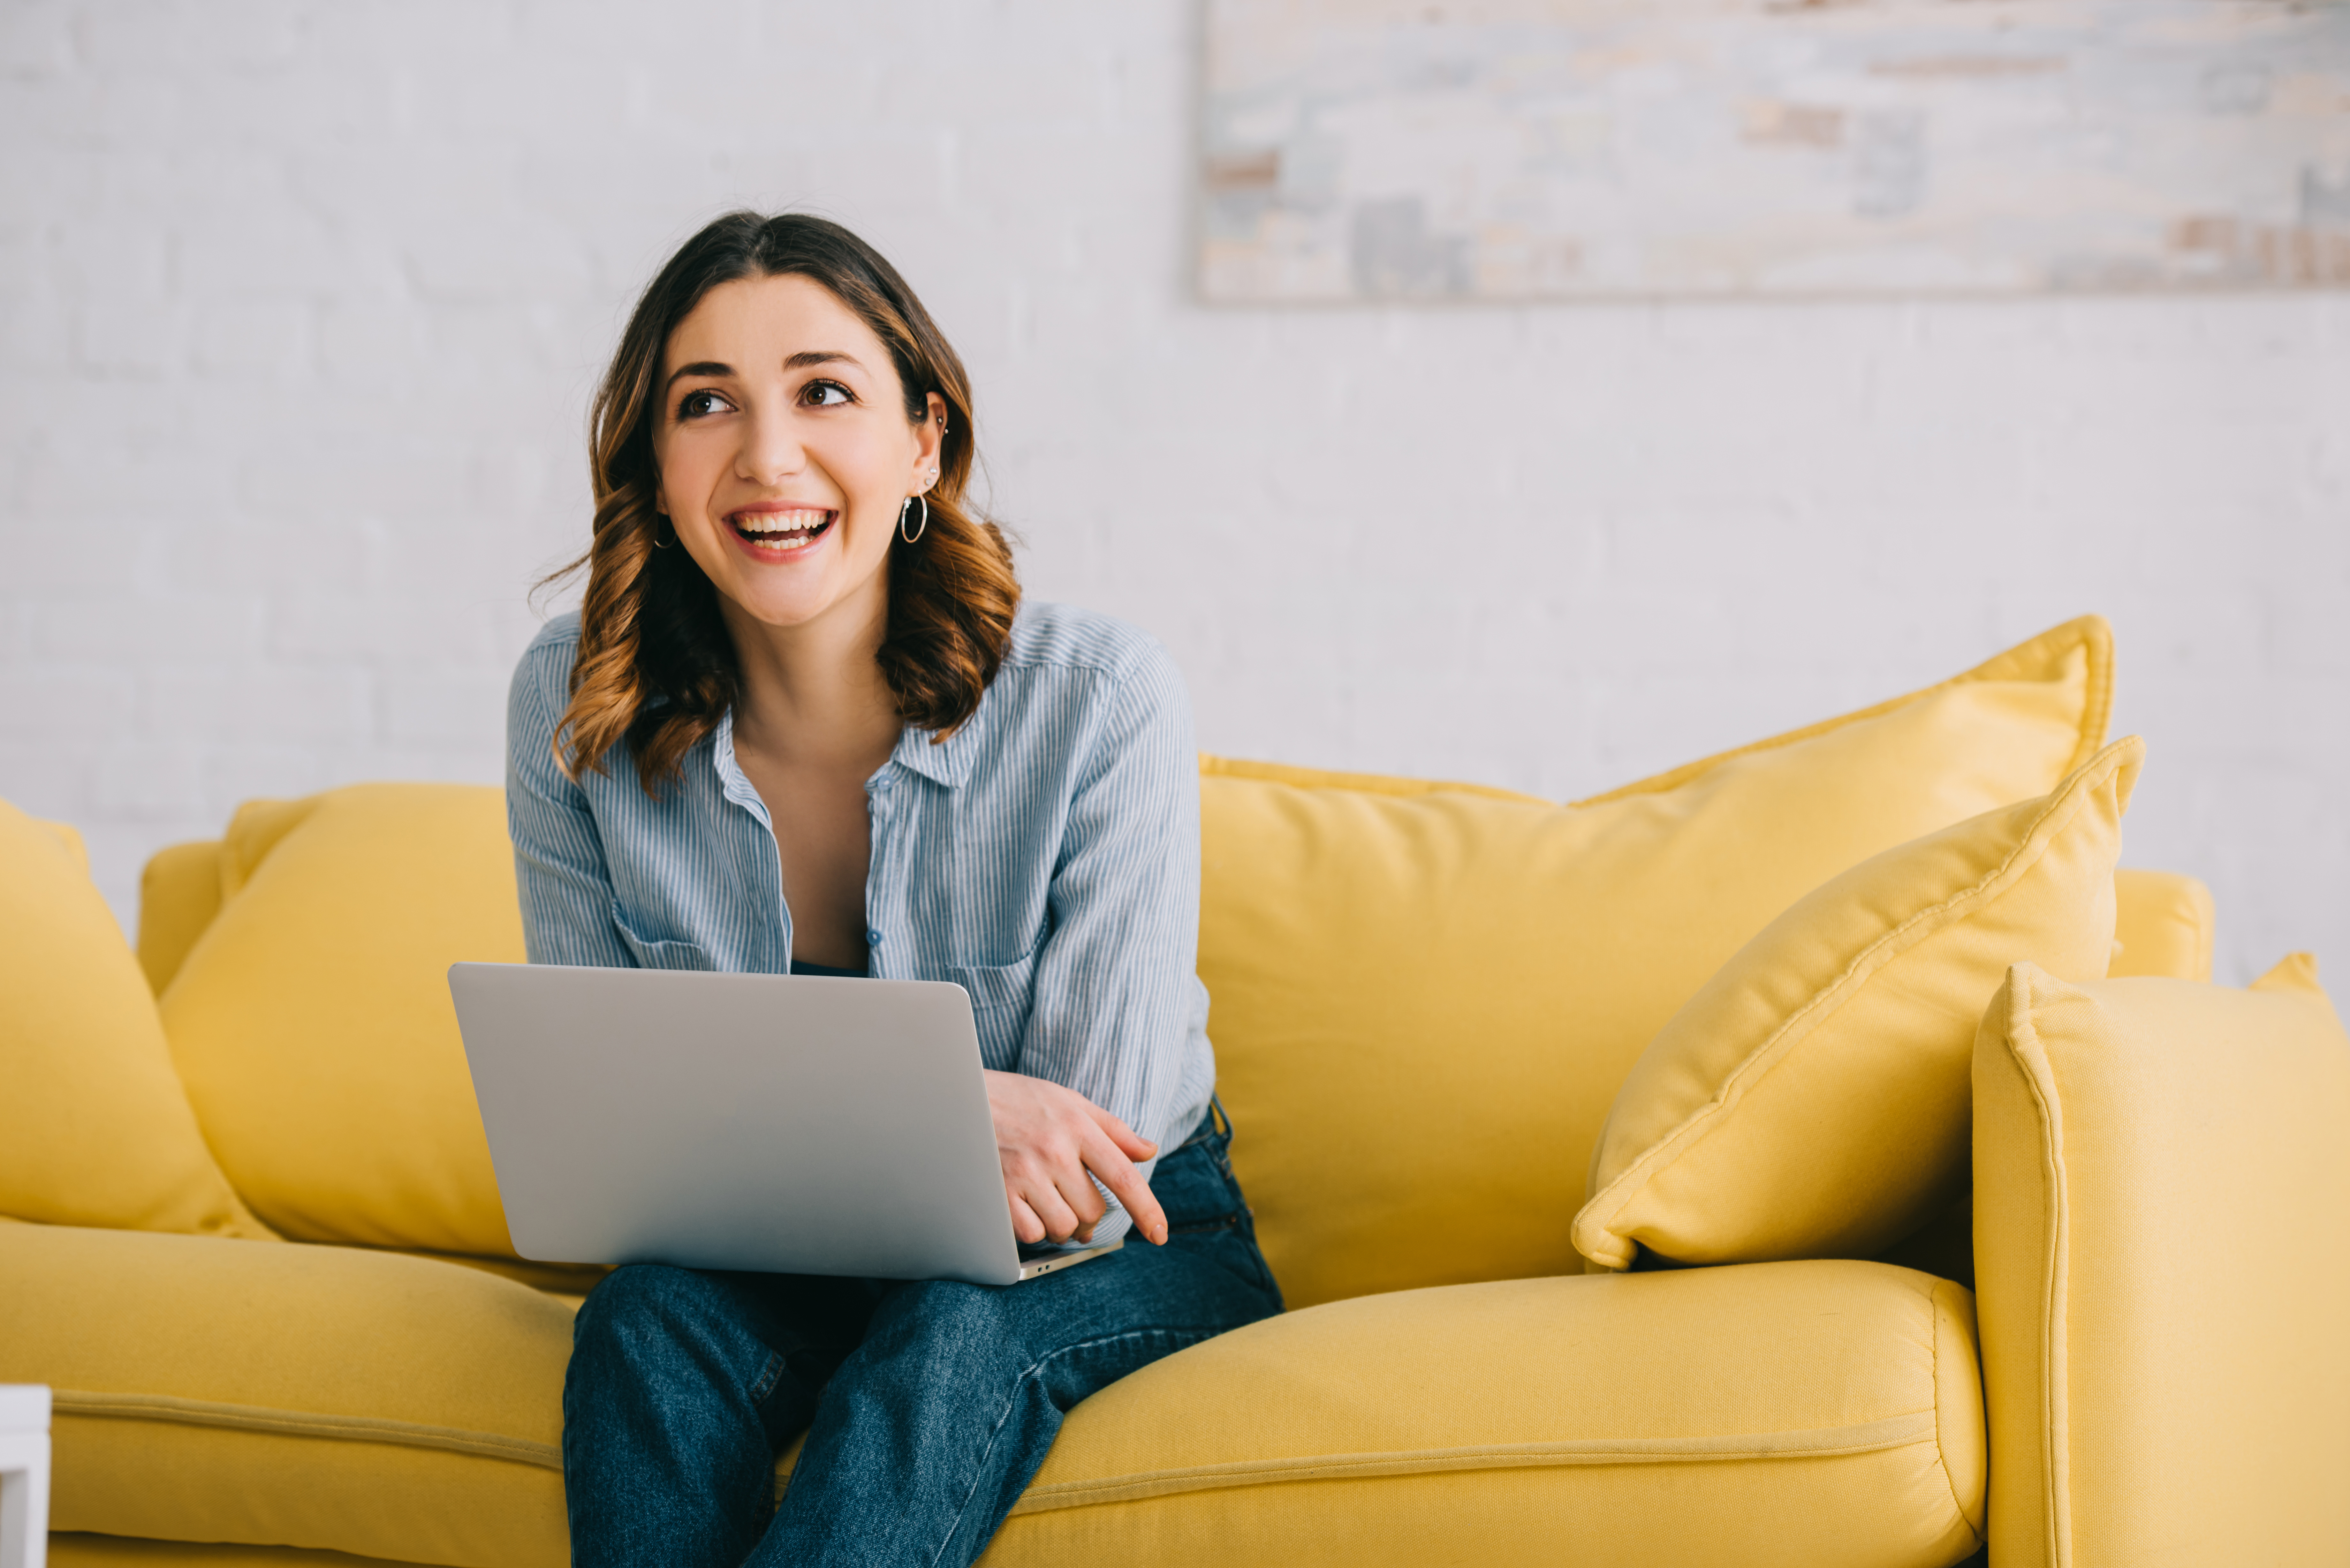 5 Effective Tips for Freelancers in 2020